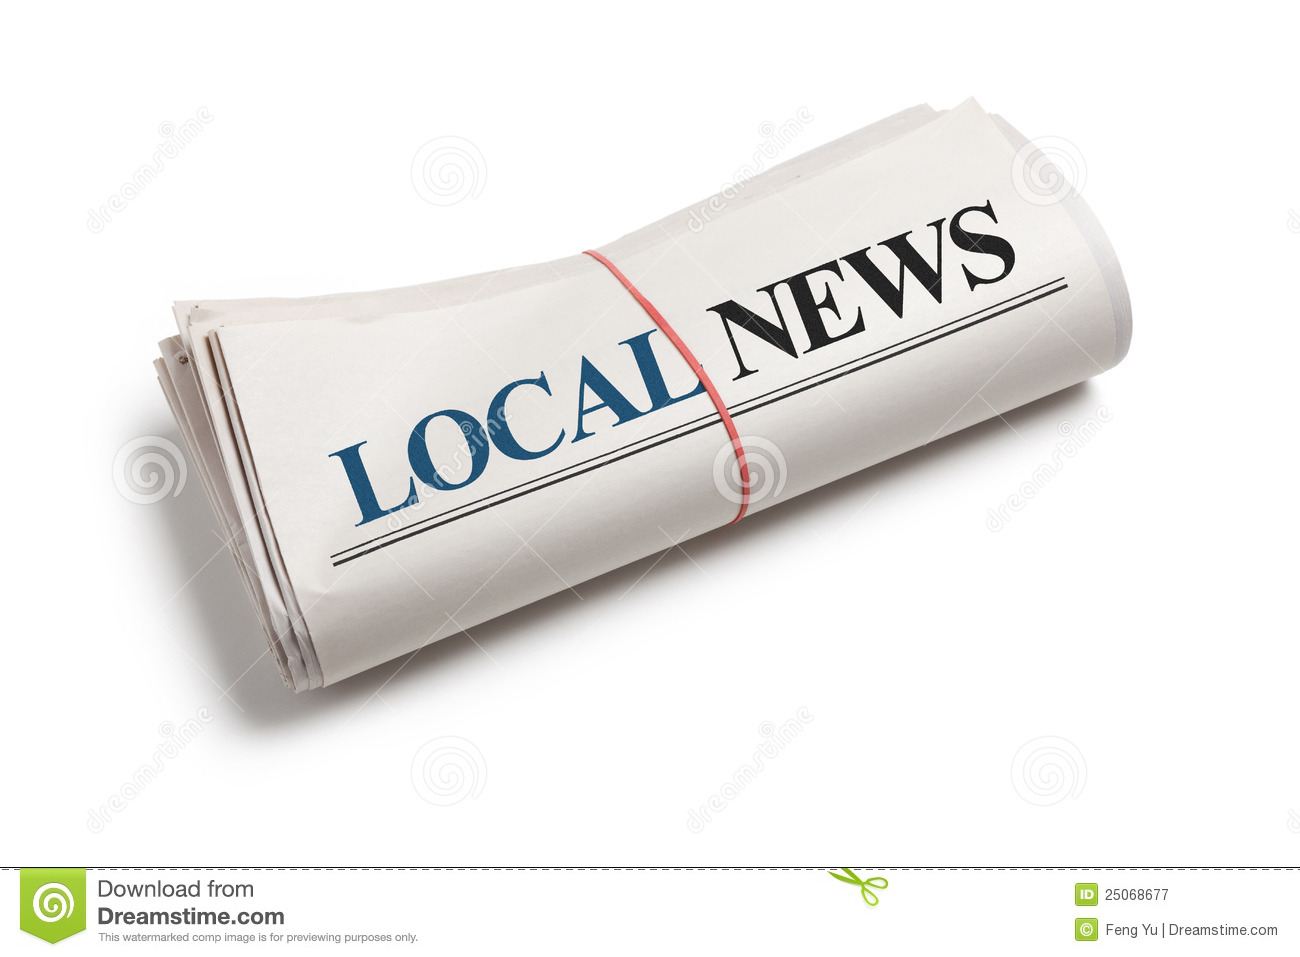 Local News Royalty Free Stock Photography - Image: 25068677